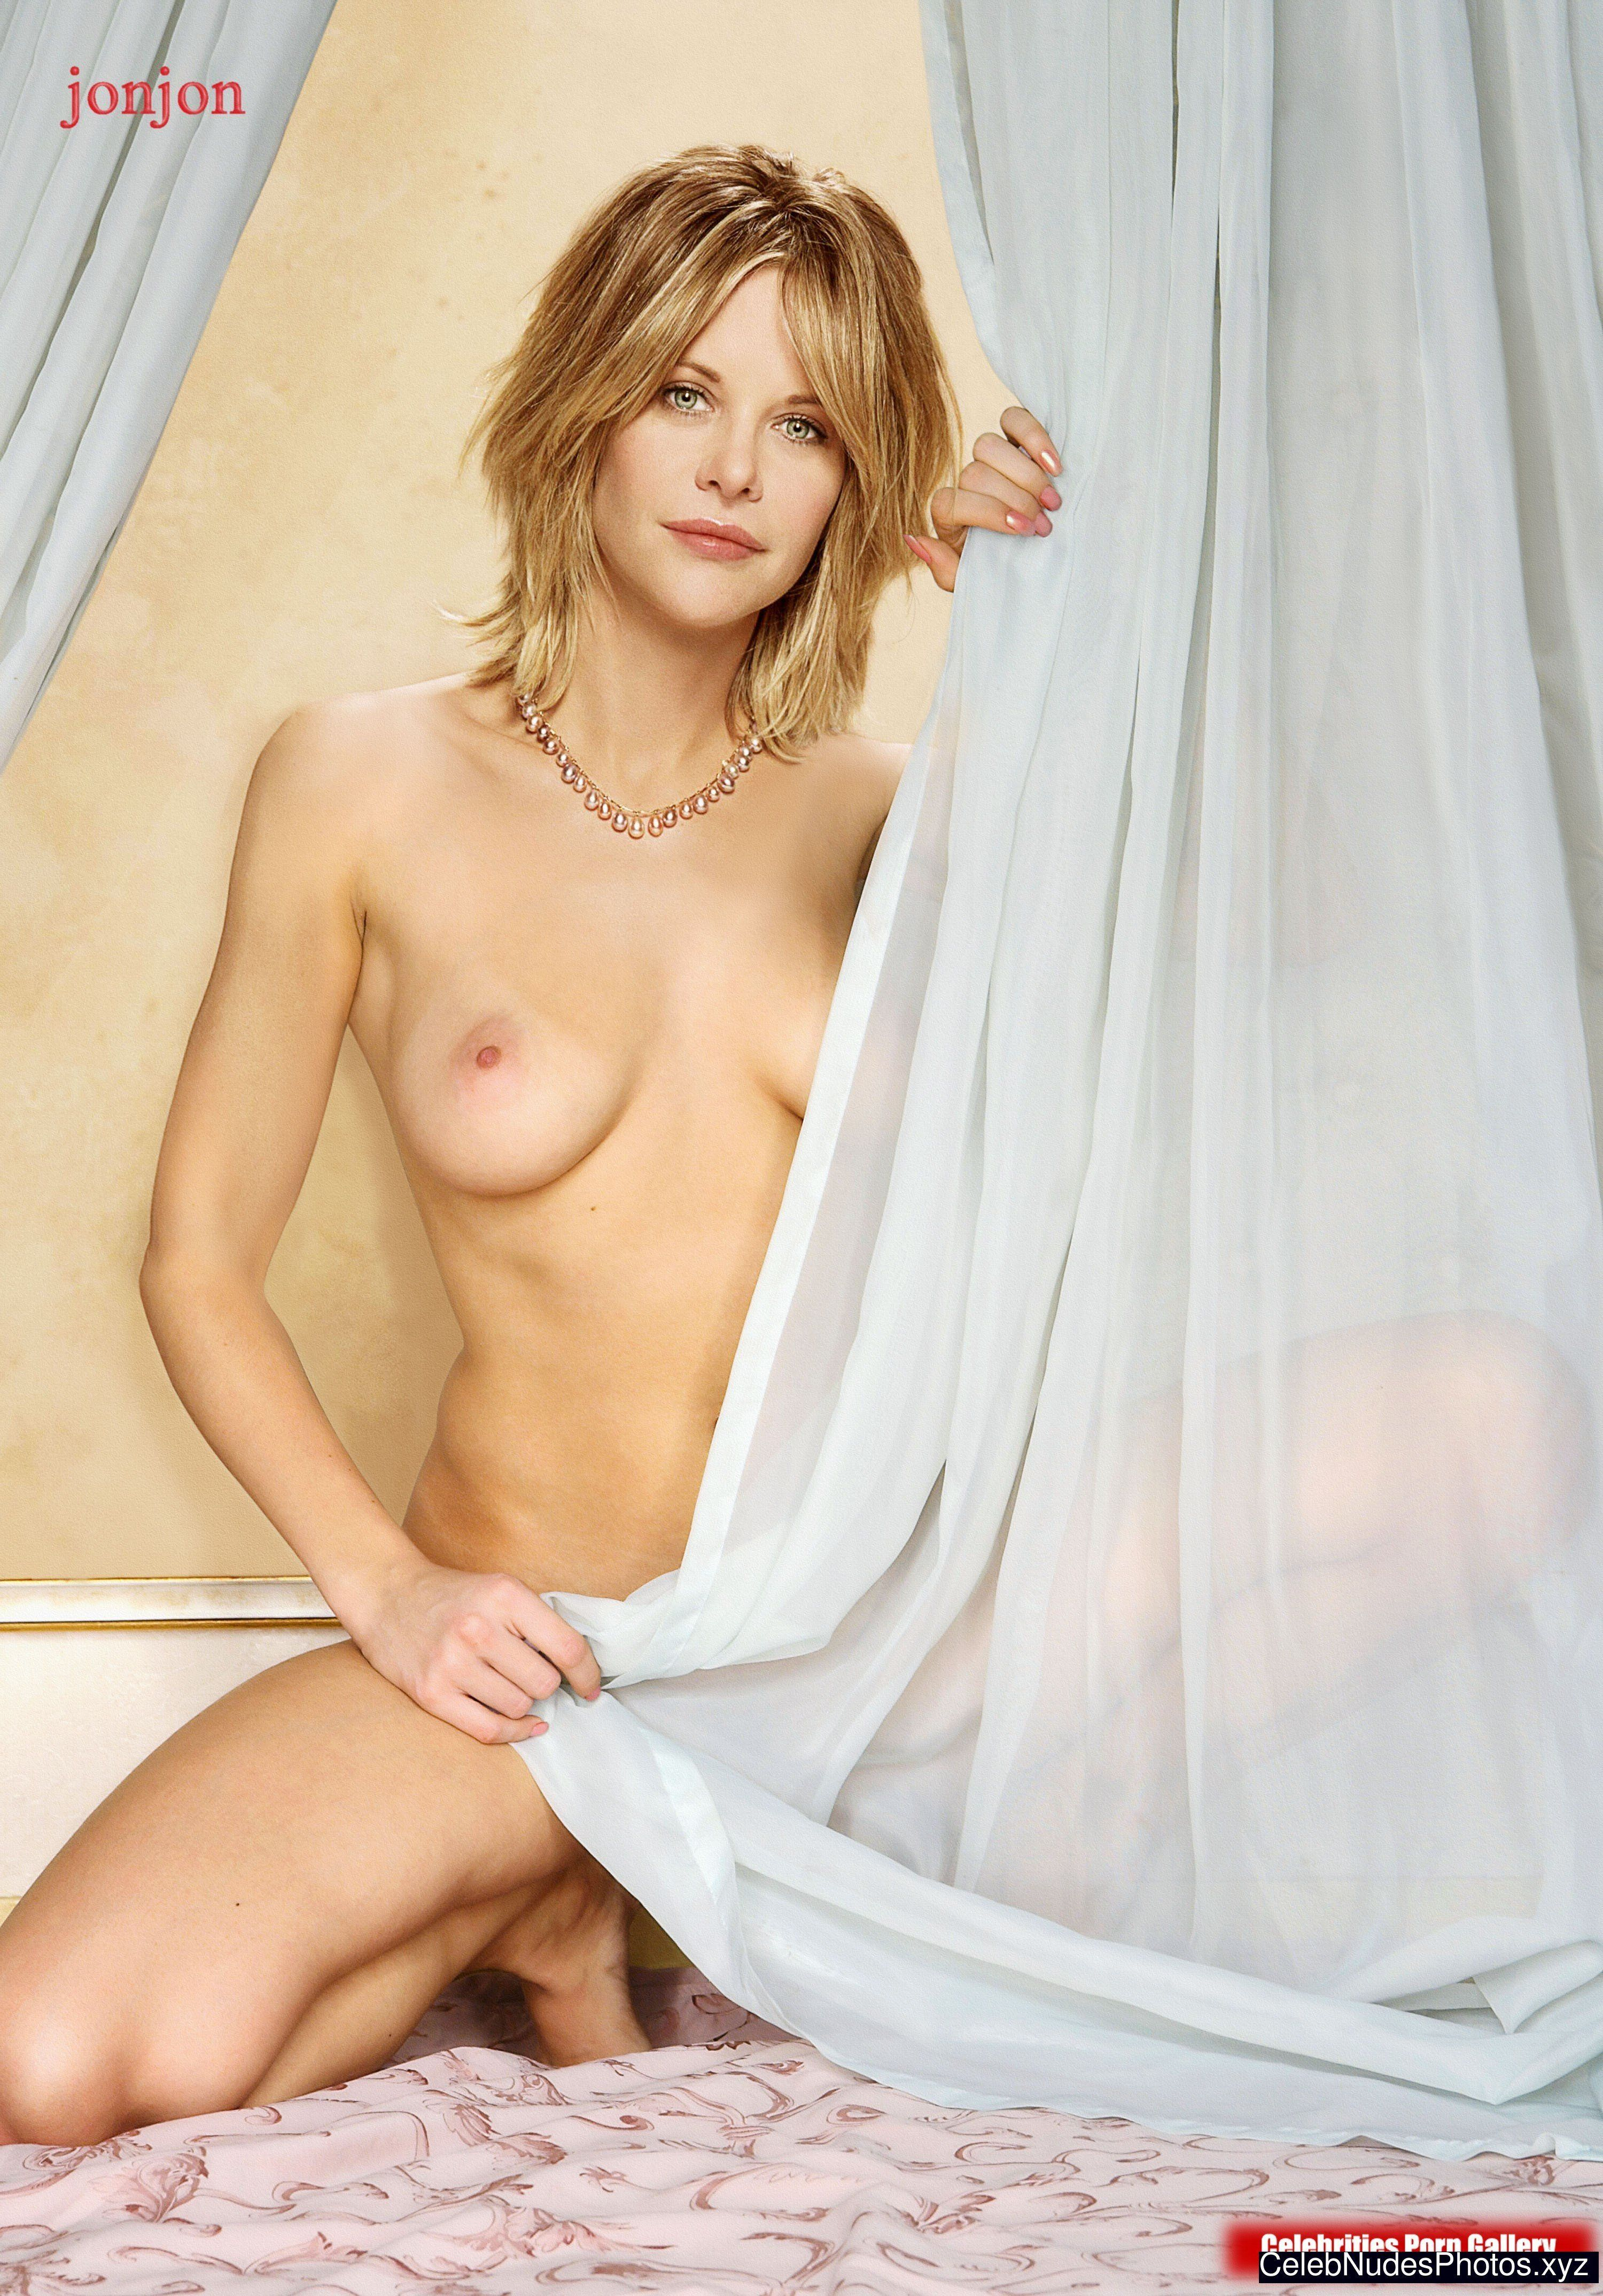 Meg ryan pussy anal concurrence final